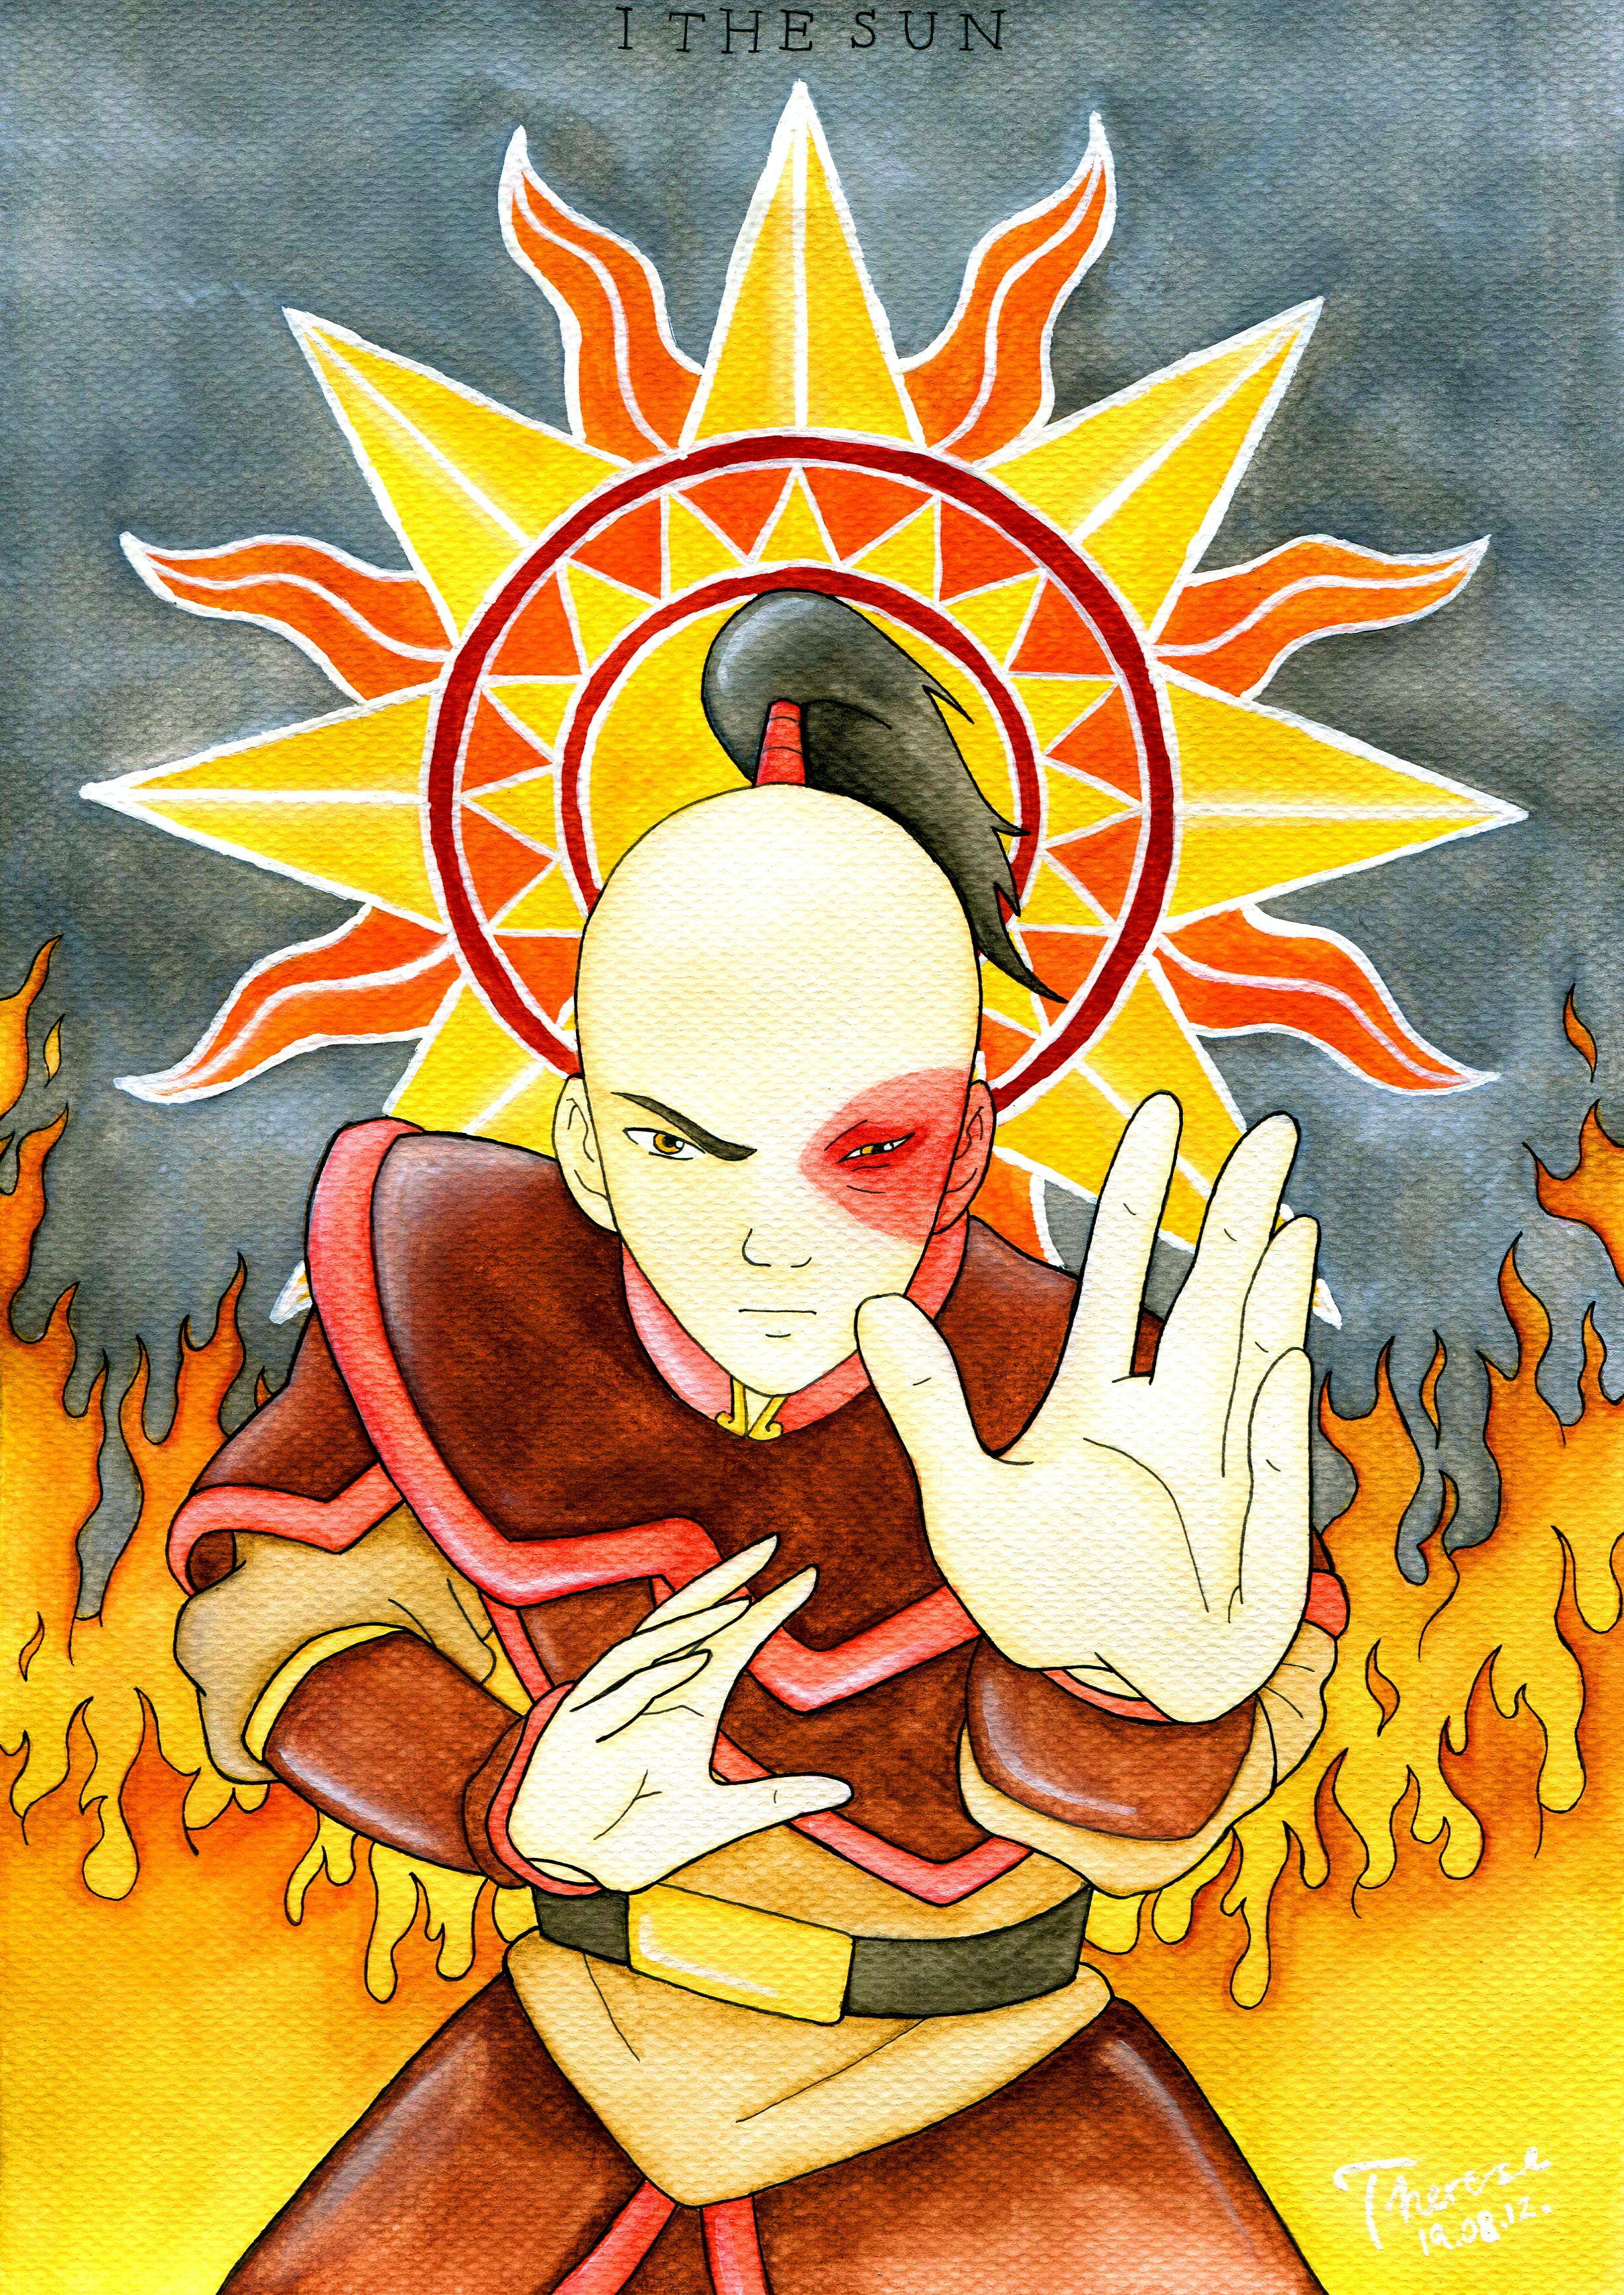 The character Zuko from Avatar: the Last Airbender as the major arcana card The Sun